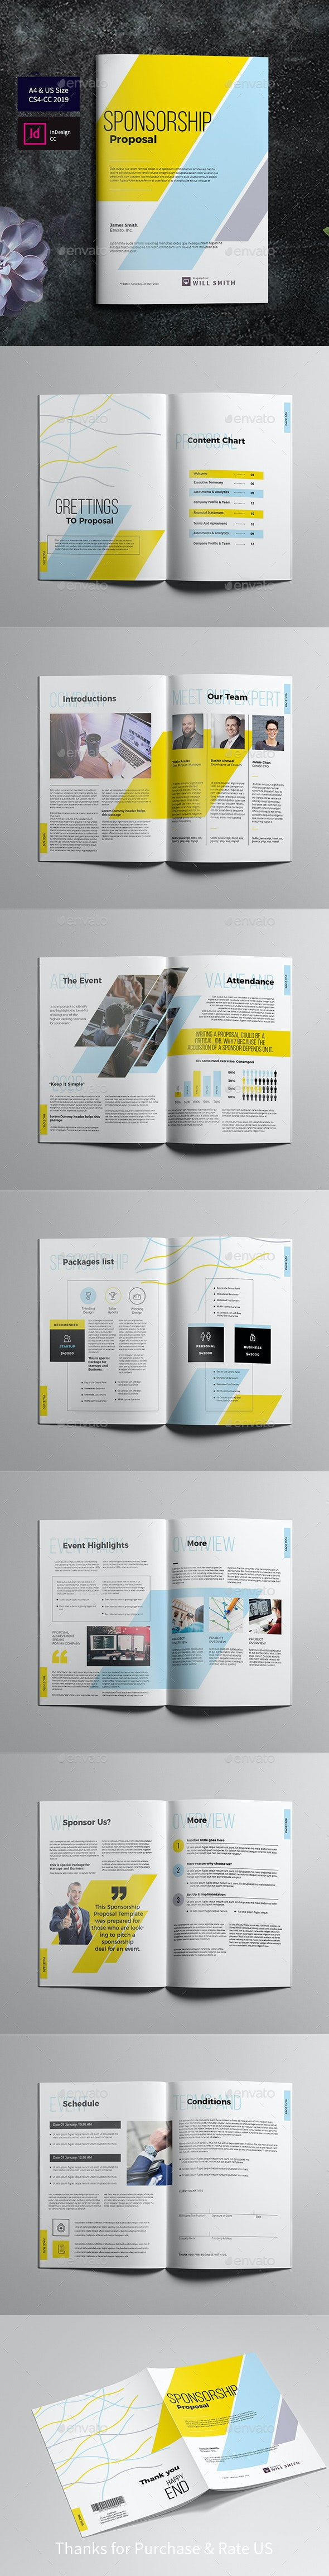 Sponsorship Proposal - Proposals & Invoices Stationery